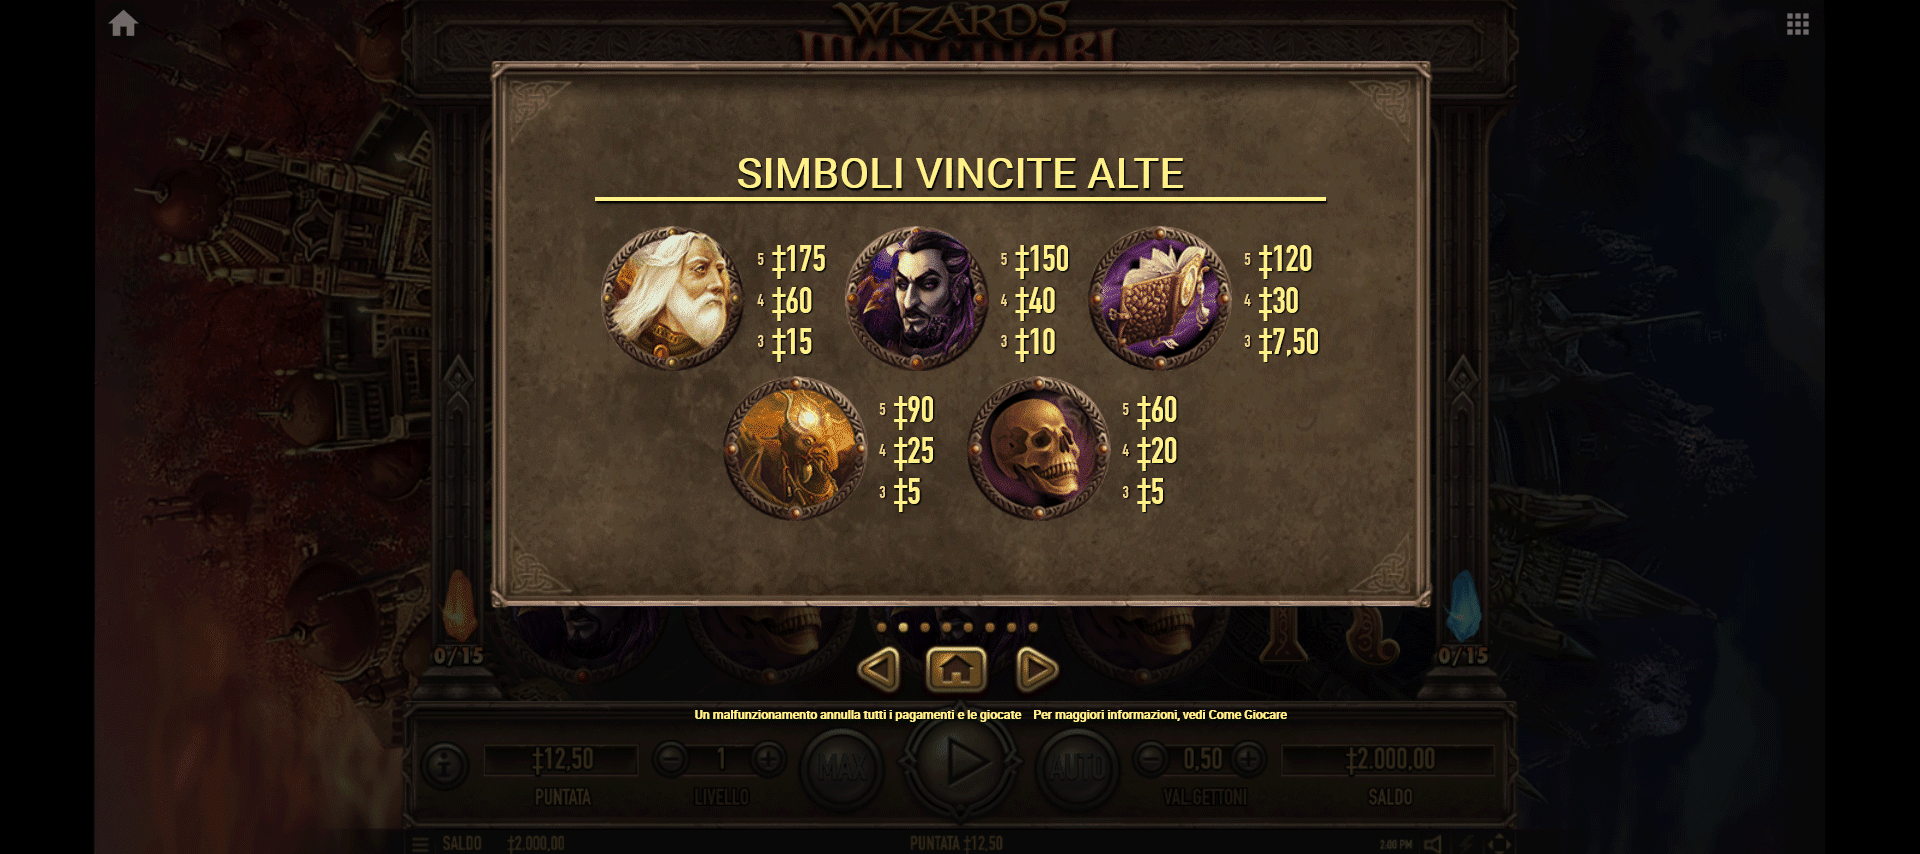 paytable della slot online wizards want war